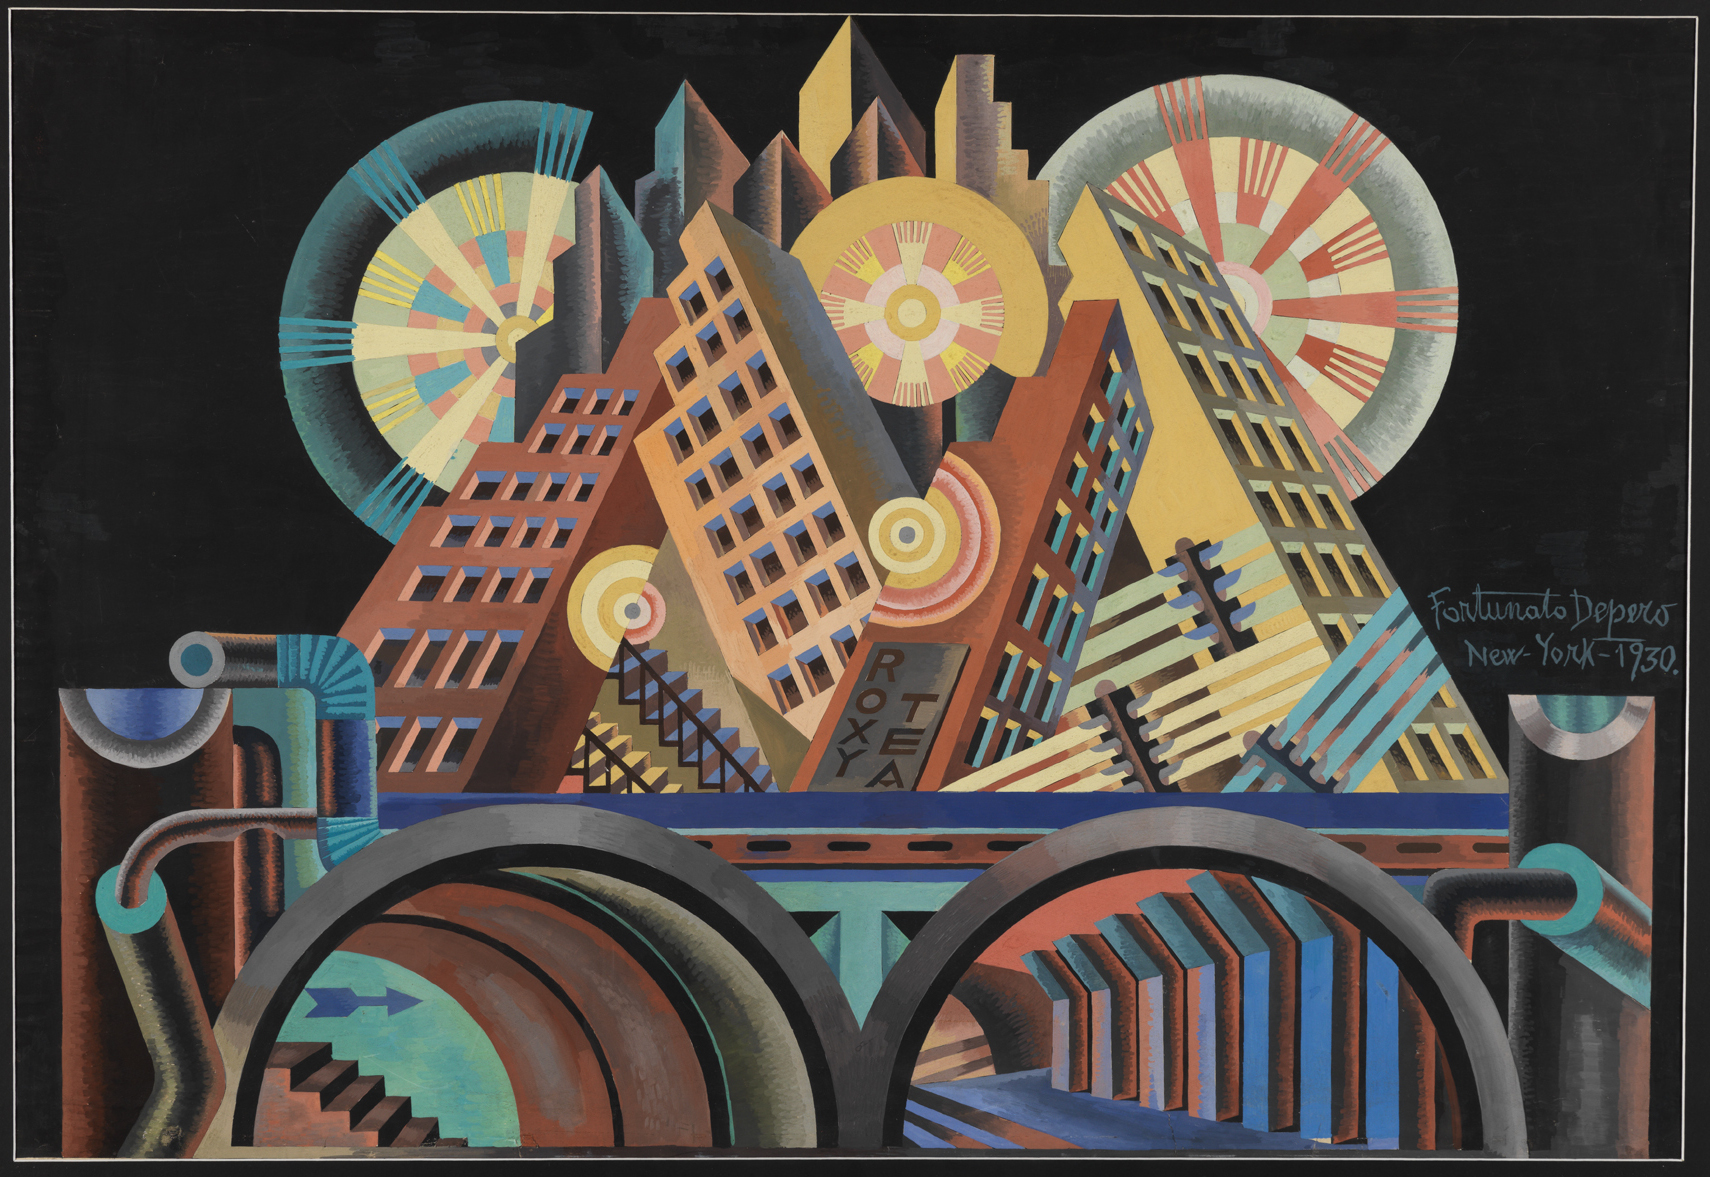 german expressionism and italian futurism utopian architecture Pehnt, wolfgang, expressionist architecture, thames & hudson, na682e9p4313 1979 the robert gore rifkind center for german expressionist studies , lacma vogt, paul & ita heinze-greenberg,  expressionism , oxford art online.